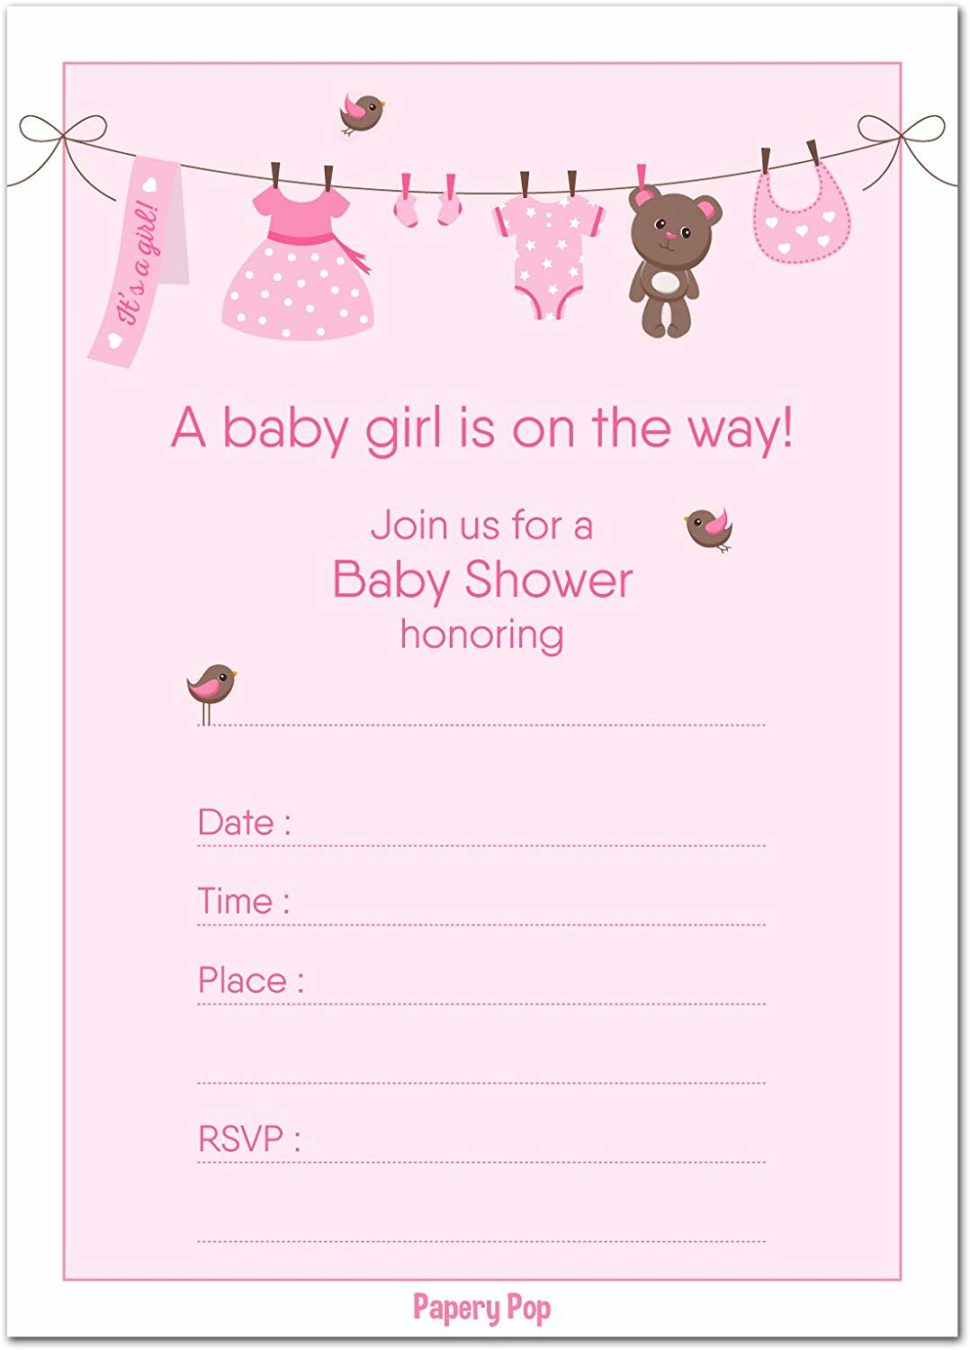 Medium Size of Baby Shower:63+ Delightful Cheap Baby Shower Invitations Image Inspirations Baby Shower In With Arreglos Para Baby Shower Plus Baby Shower Wording Together With Princess Baby Shower